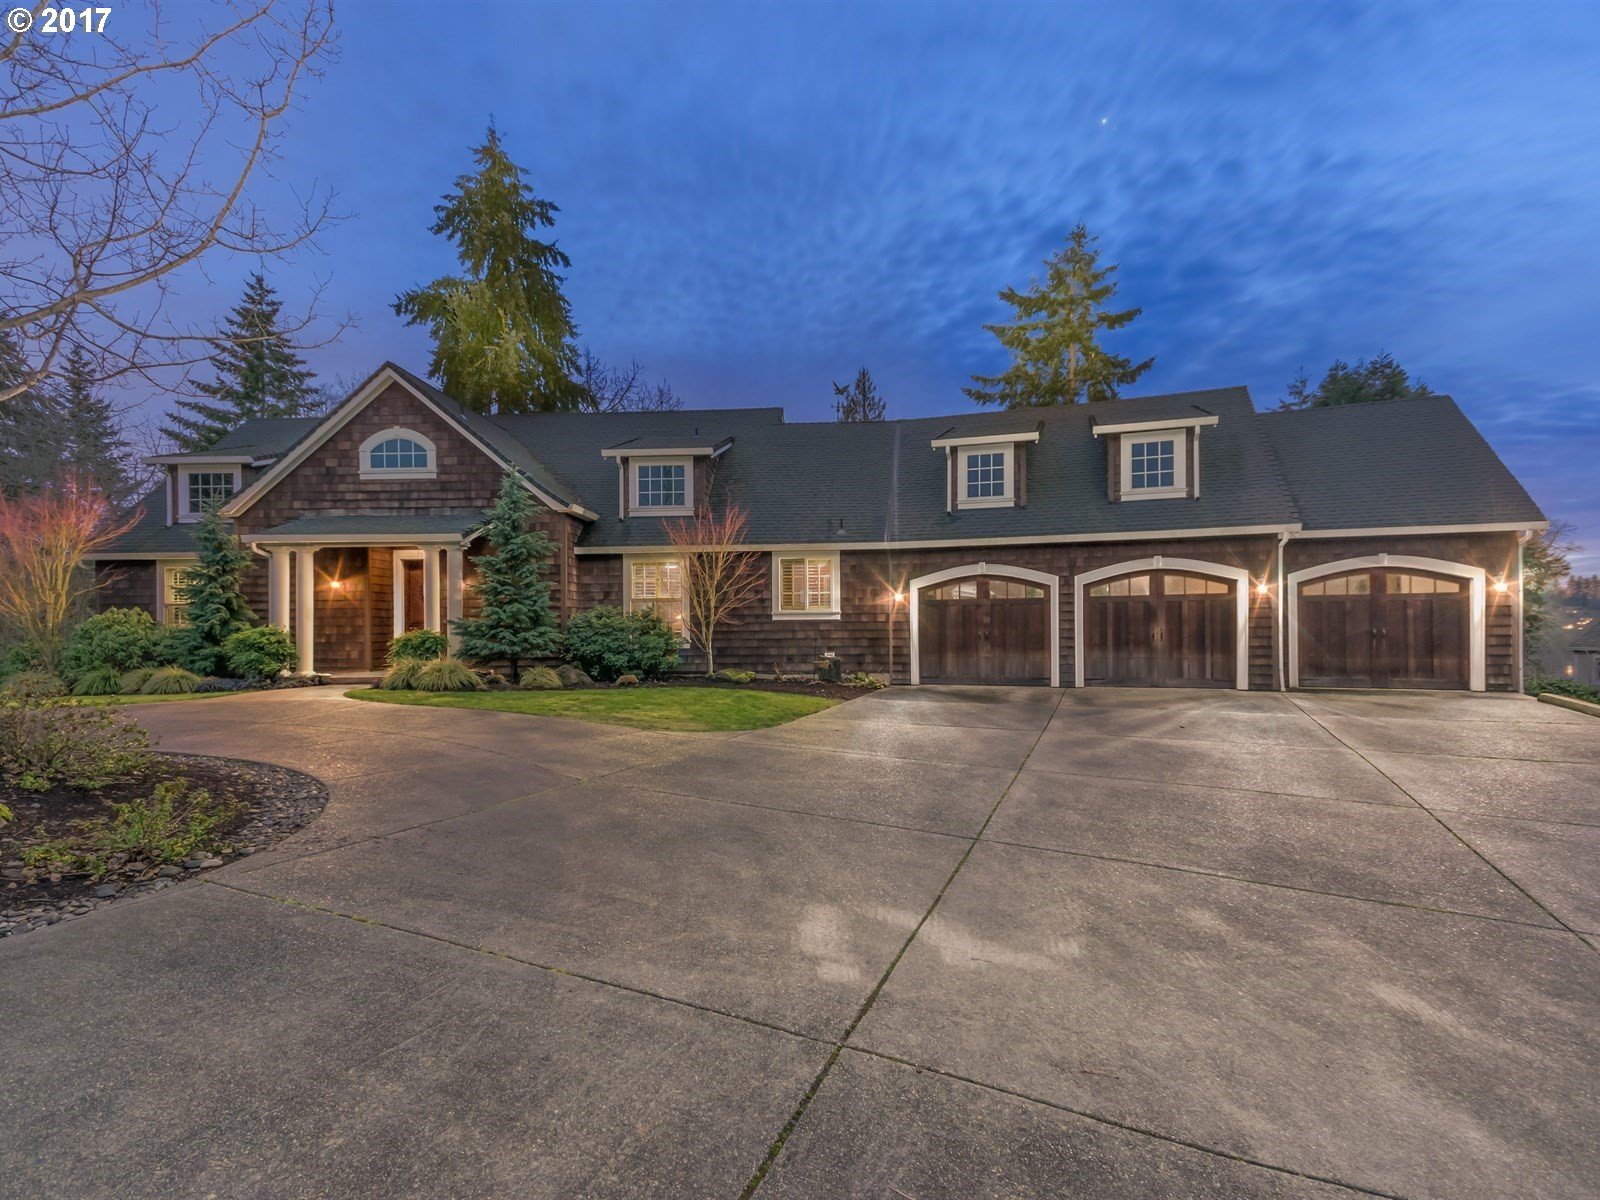 3621 NW BLISS RD, Vancouver, WA 98685